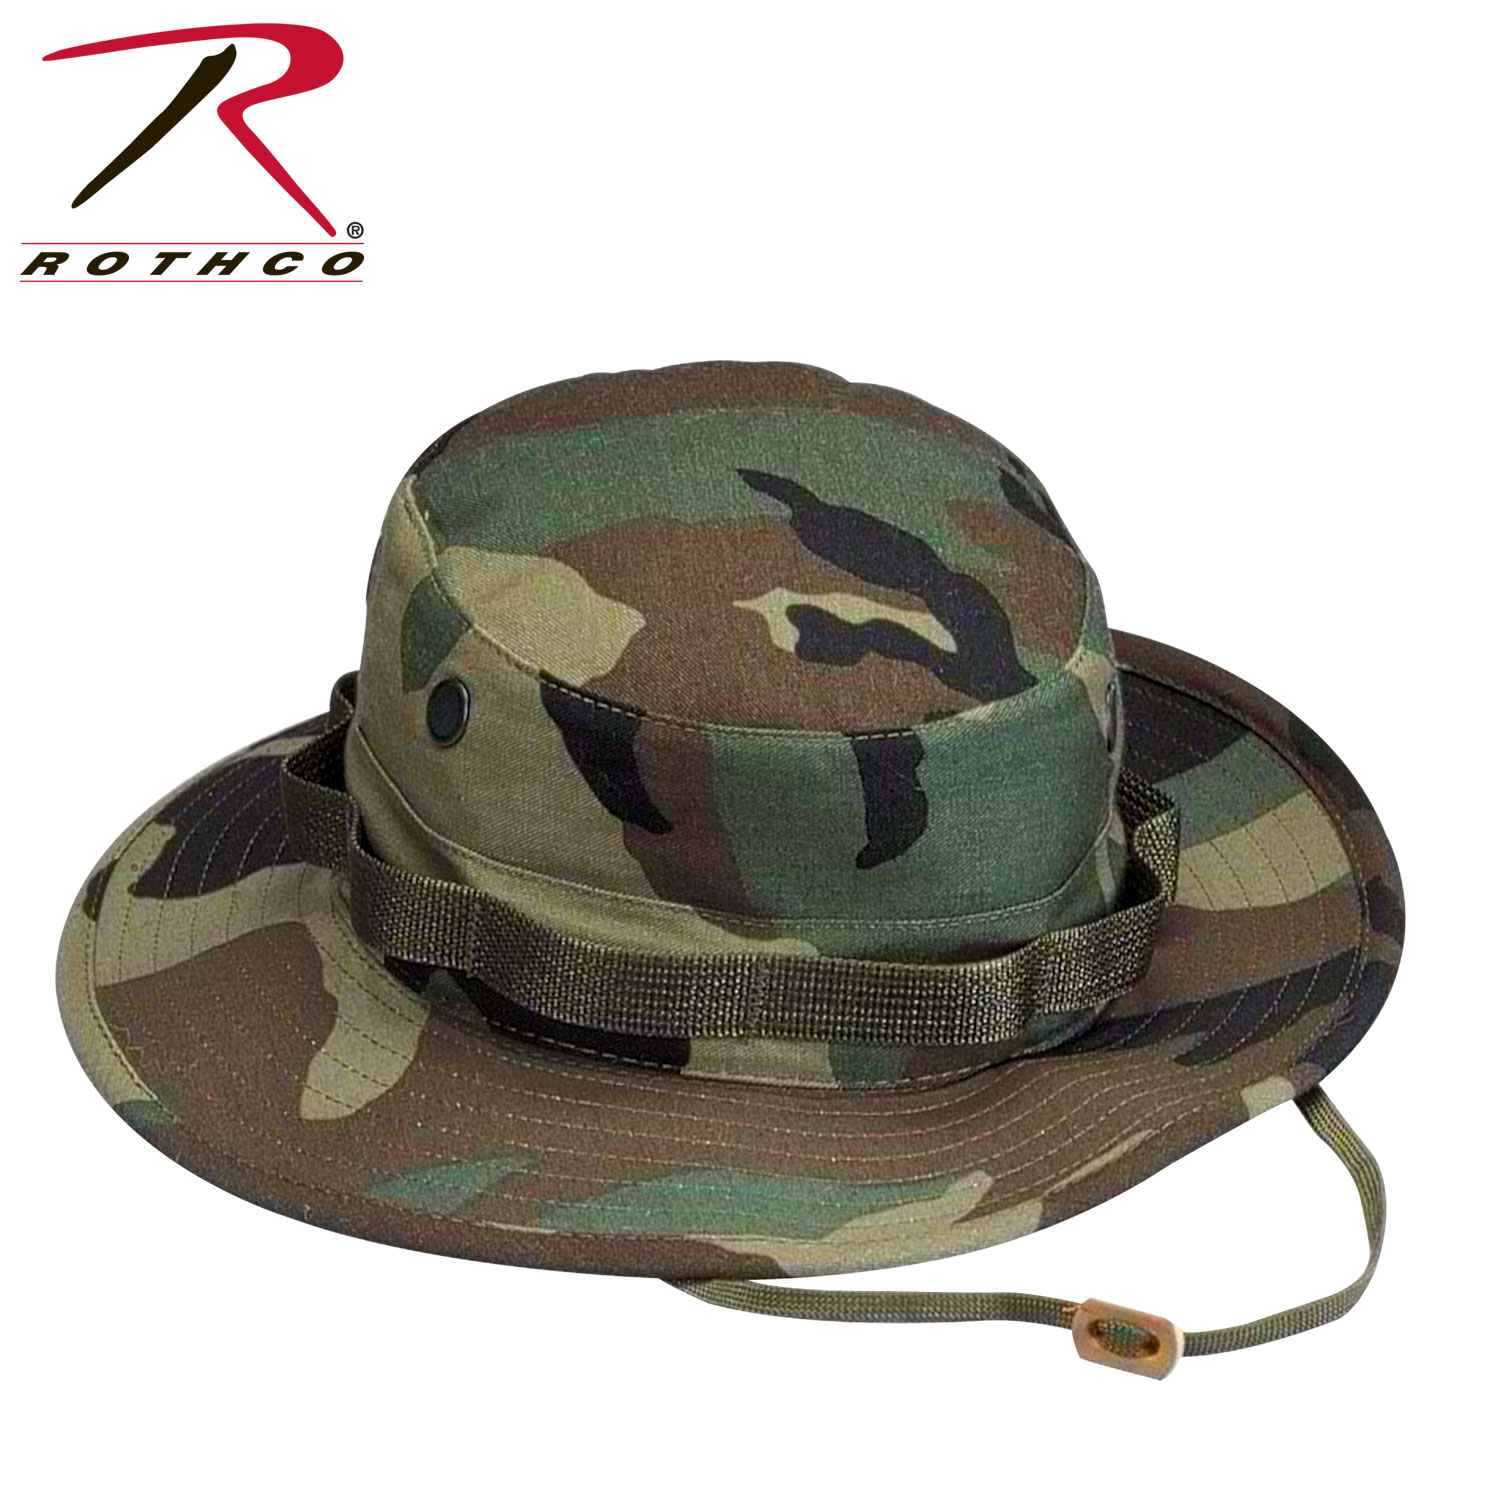 070c31d652f Rothco Camo Boonie Hat